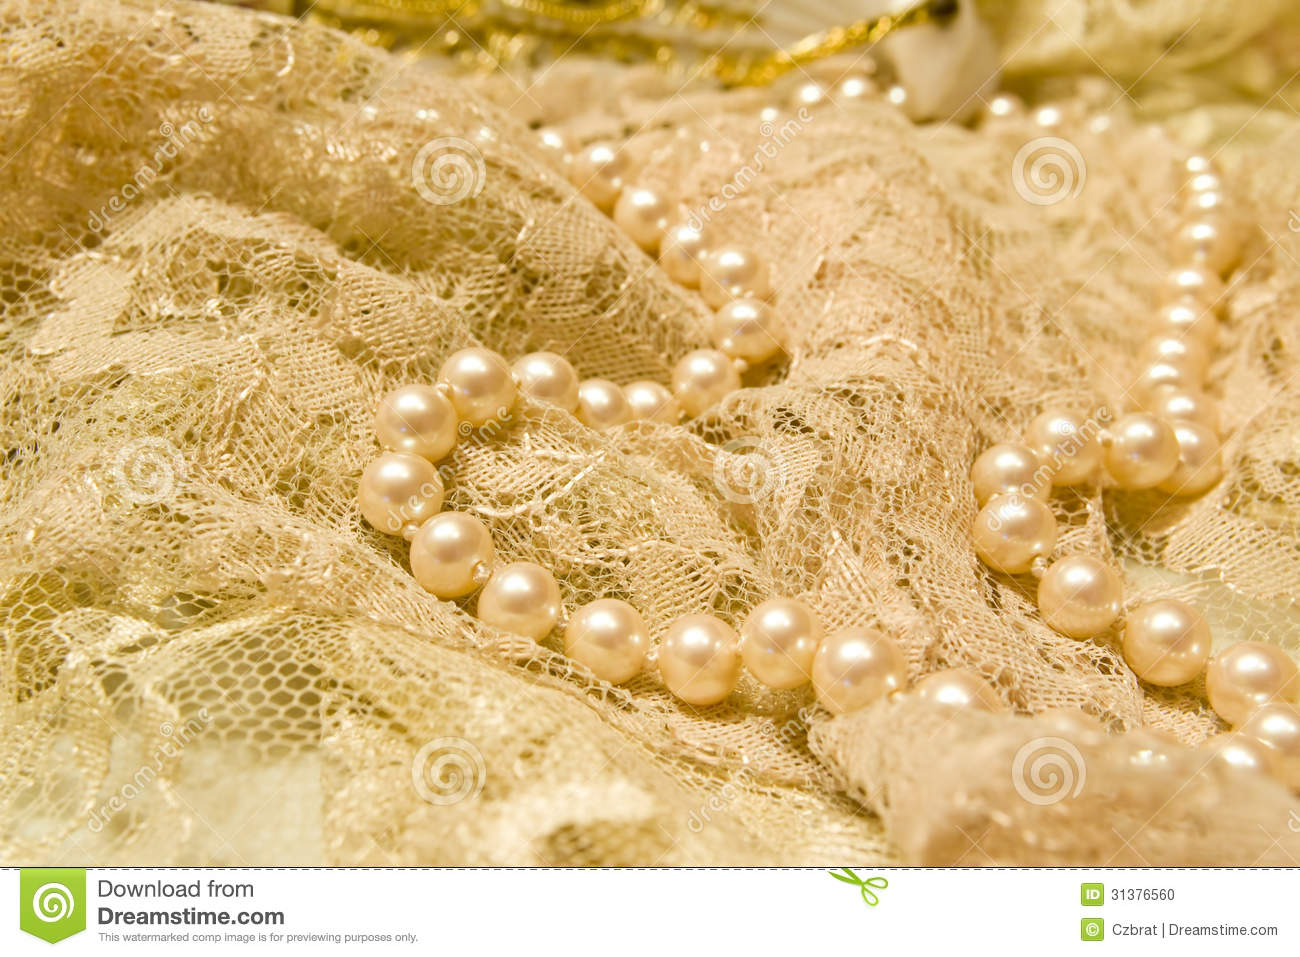 Lace And Pearls Stock Photo - Image: 31376560